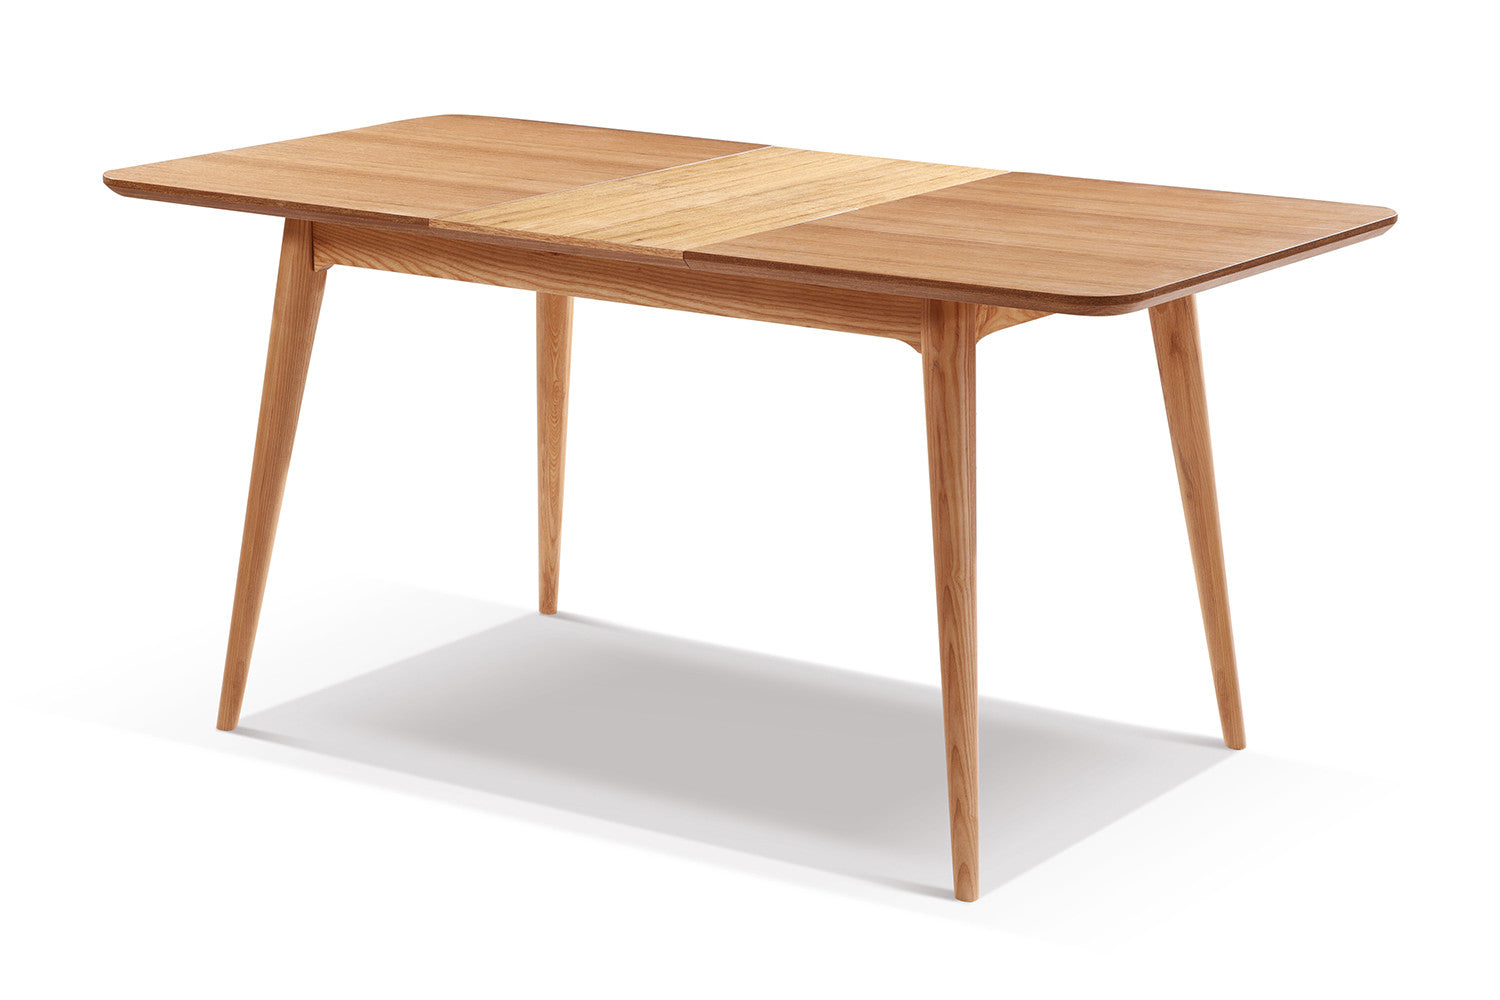 Table de salle manger extensible en bois adda dewarens for Table salle a manger rallonges integrees